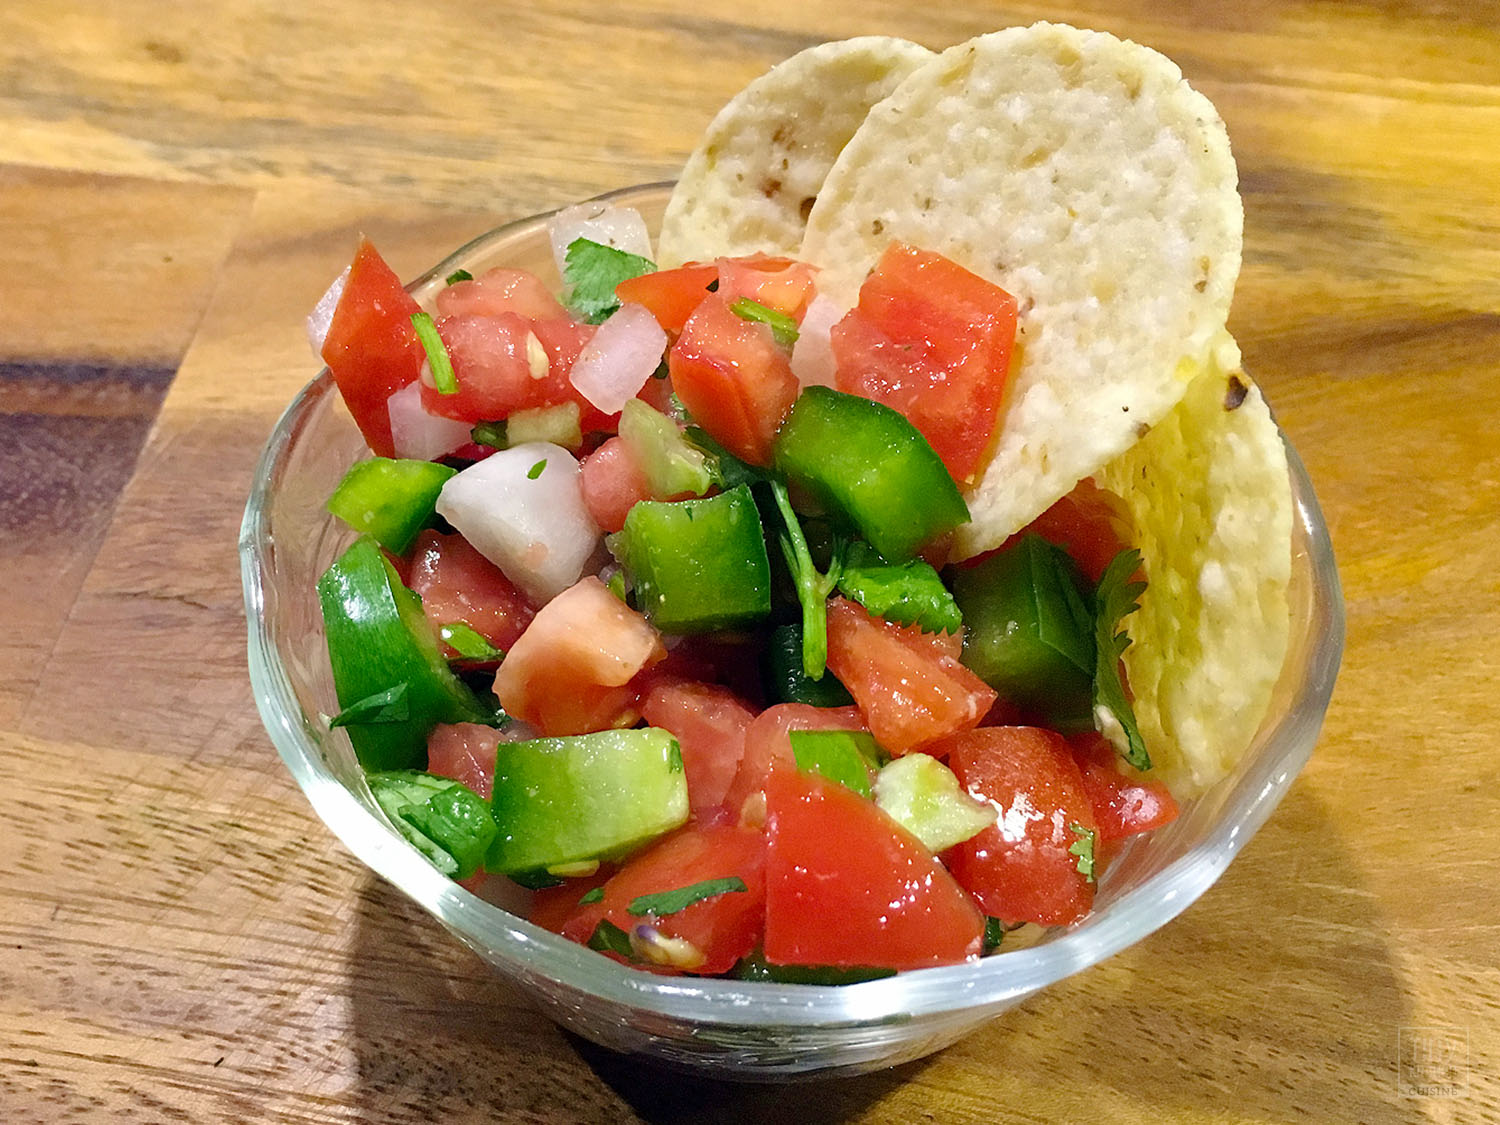 Pico De Gallo is a fresh mexican salsa. Spicy, fruity, and so easy to make, this recipe goes great with tortilla chips, quesadillas, or nachos. You can even put it on your tacos!   Tiny Kitchen Cuisine   http://tiny.kitchen